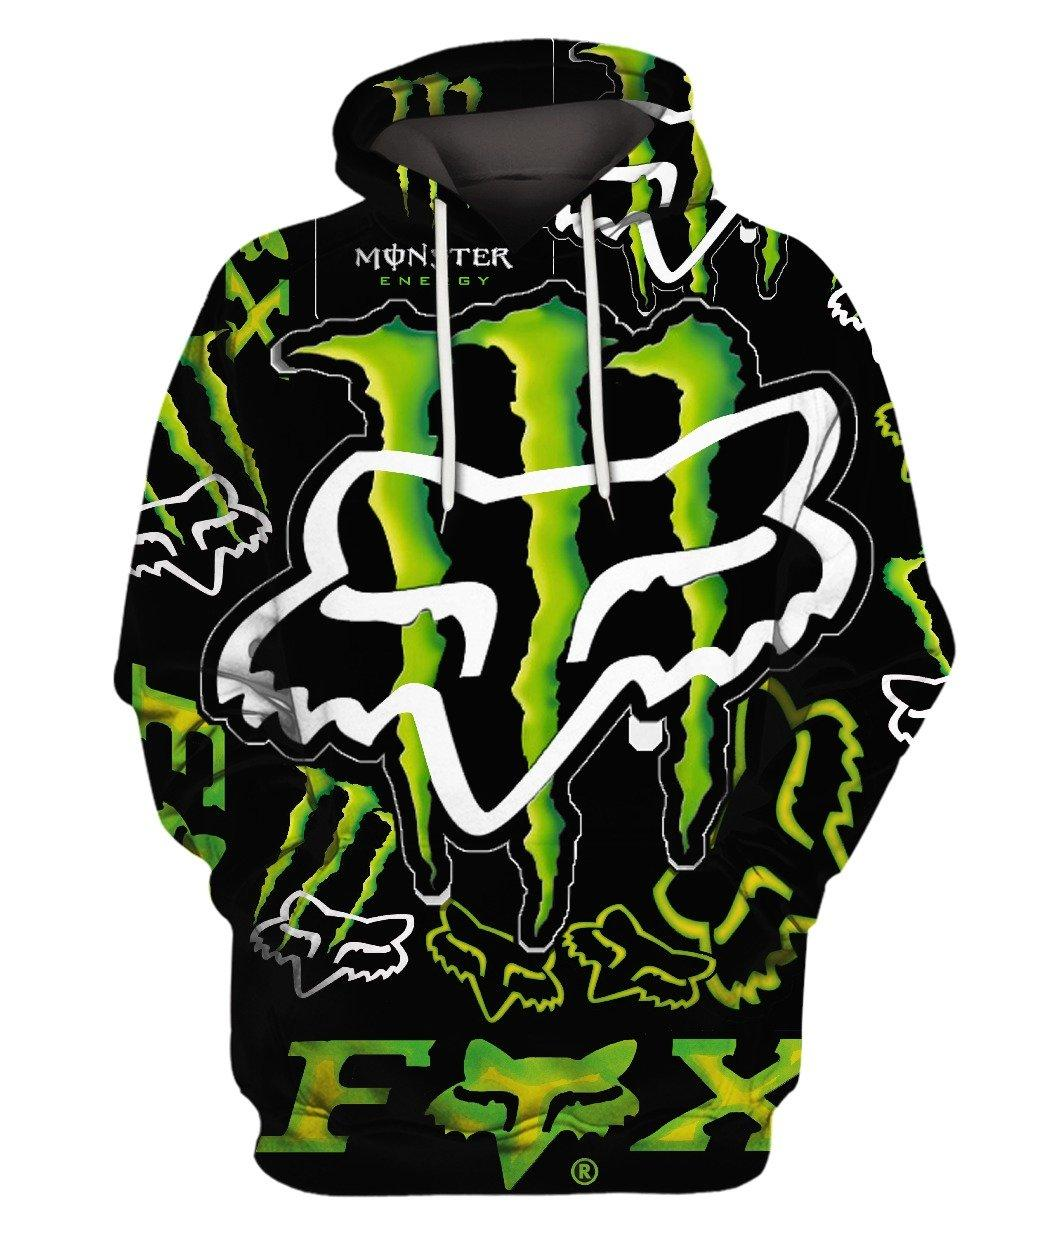 Fox Bike Moster Engery Green 3d Full Print Hoodie 3d Graphic Printed Tshirt Hoodie Up To 5xl